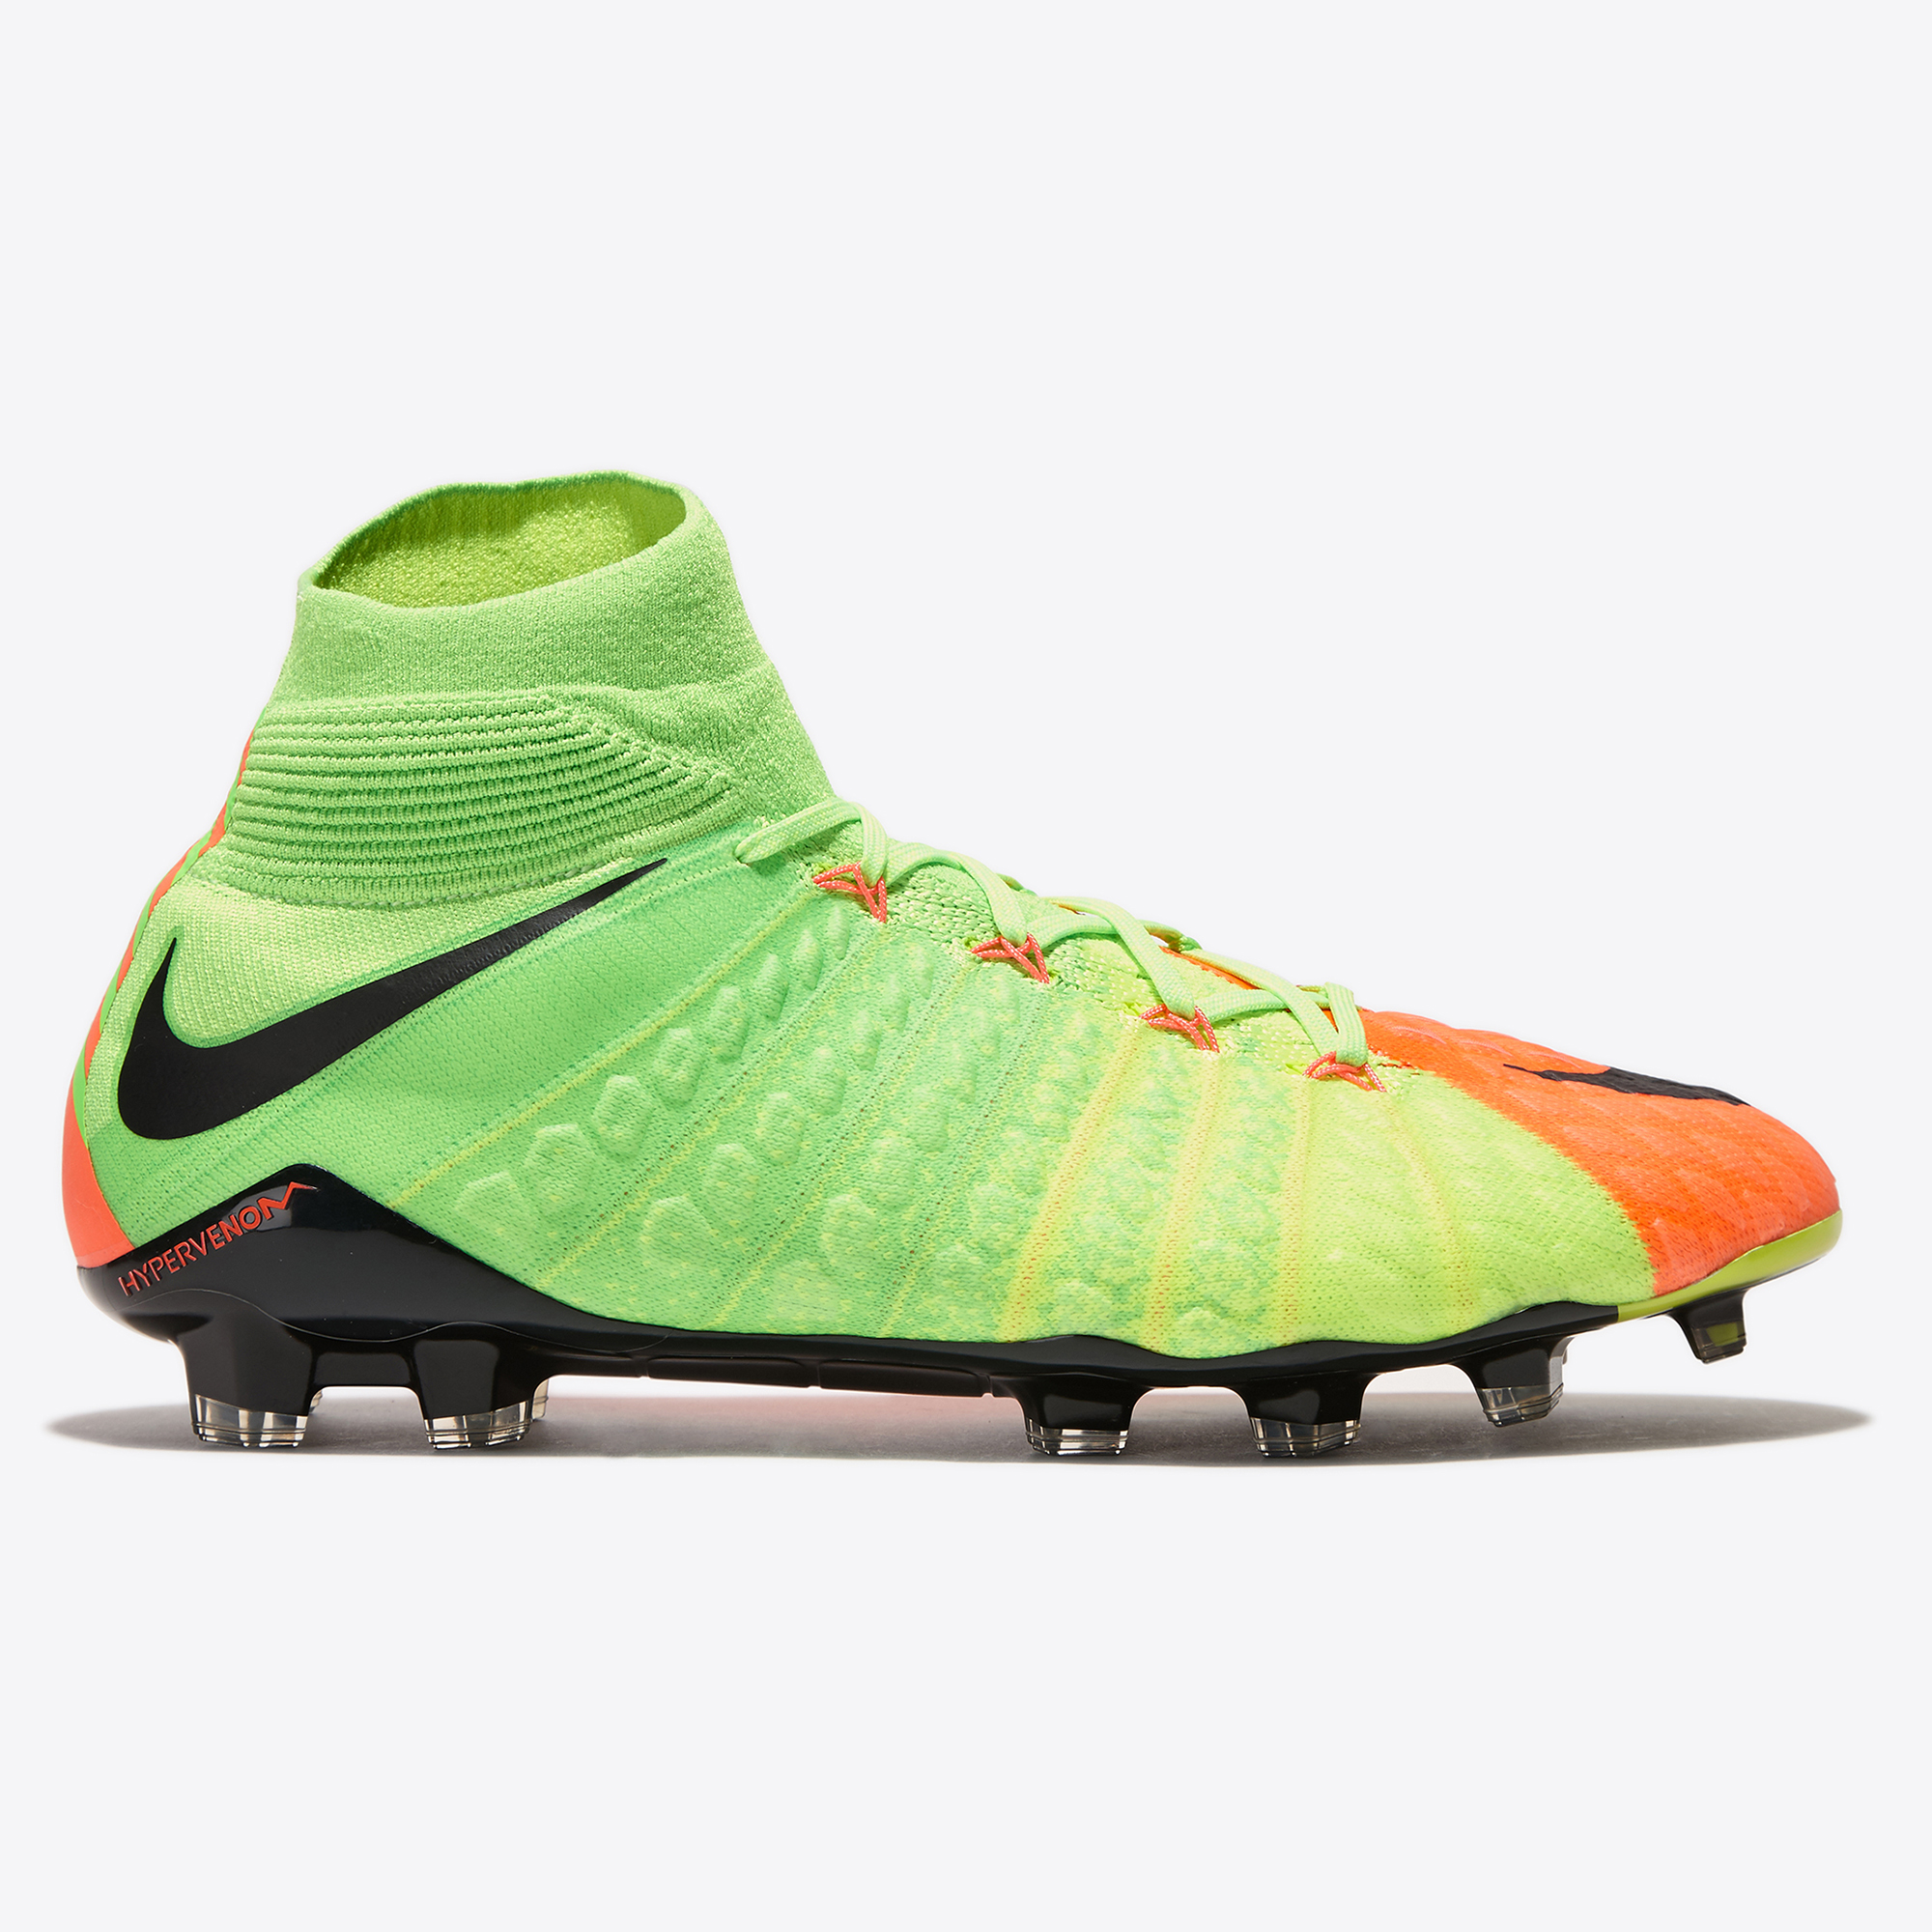 Nike Hypervenom Phantom III Firm Ground Football Boots - Electric Gree